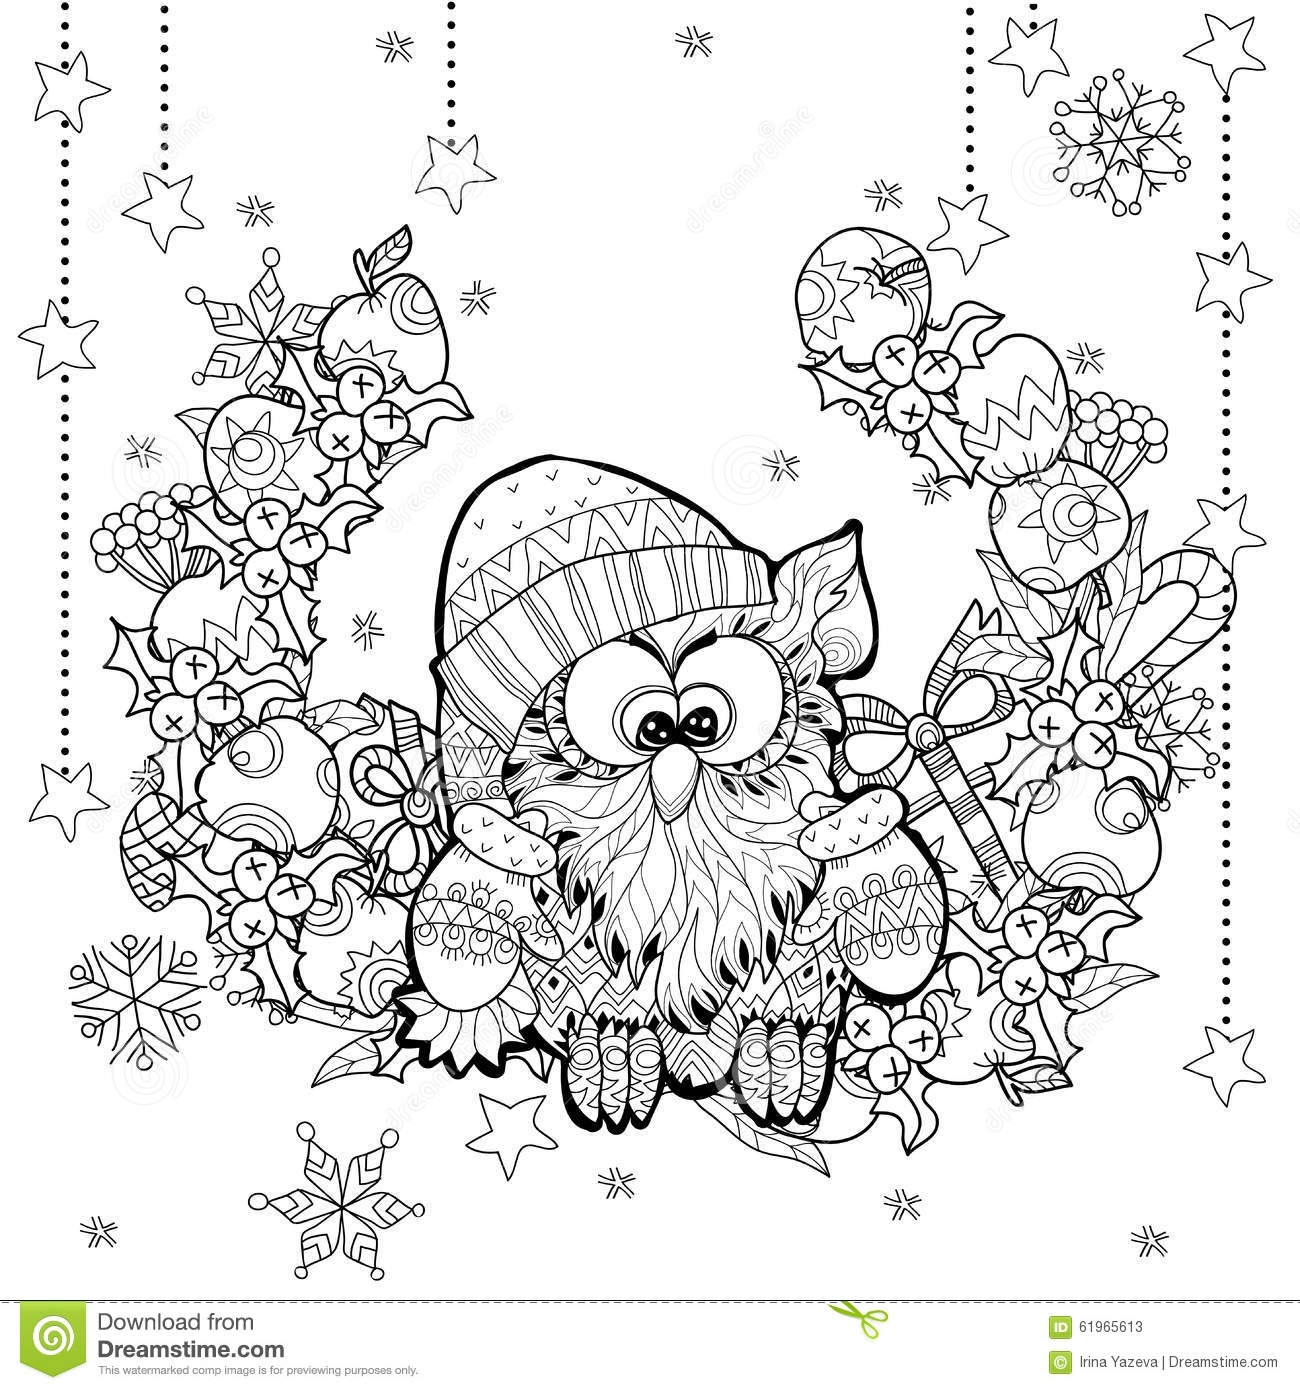 harry potter printable coloring pages - stock illustration christmas owl t box zentangle doodle vector illustration layered ready coloring image